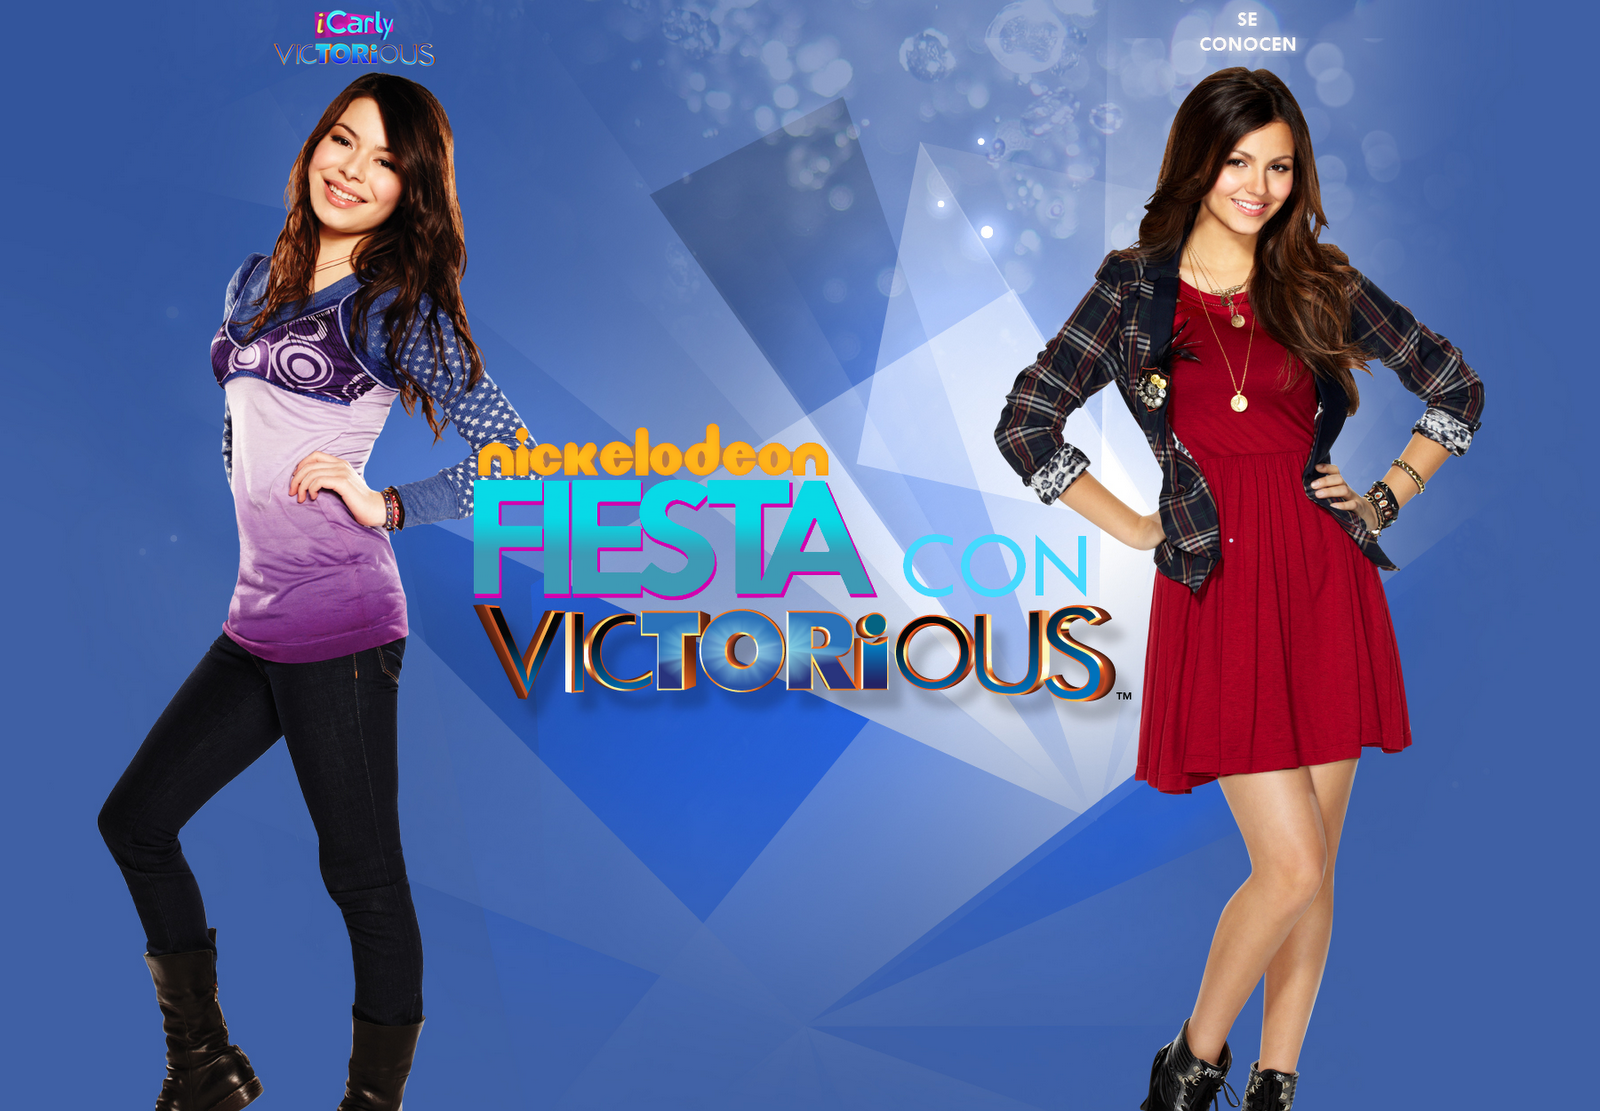 Victorious Wallpapers in Best 1600x1111 Resolutions | Kasandra Barriere BsnSCB.com